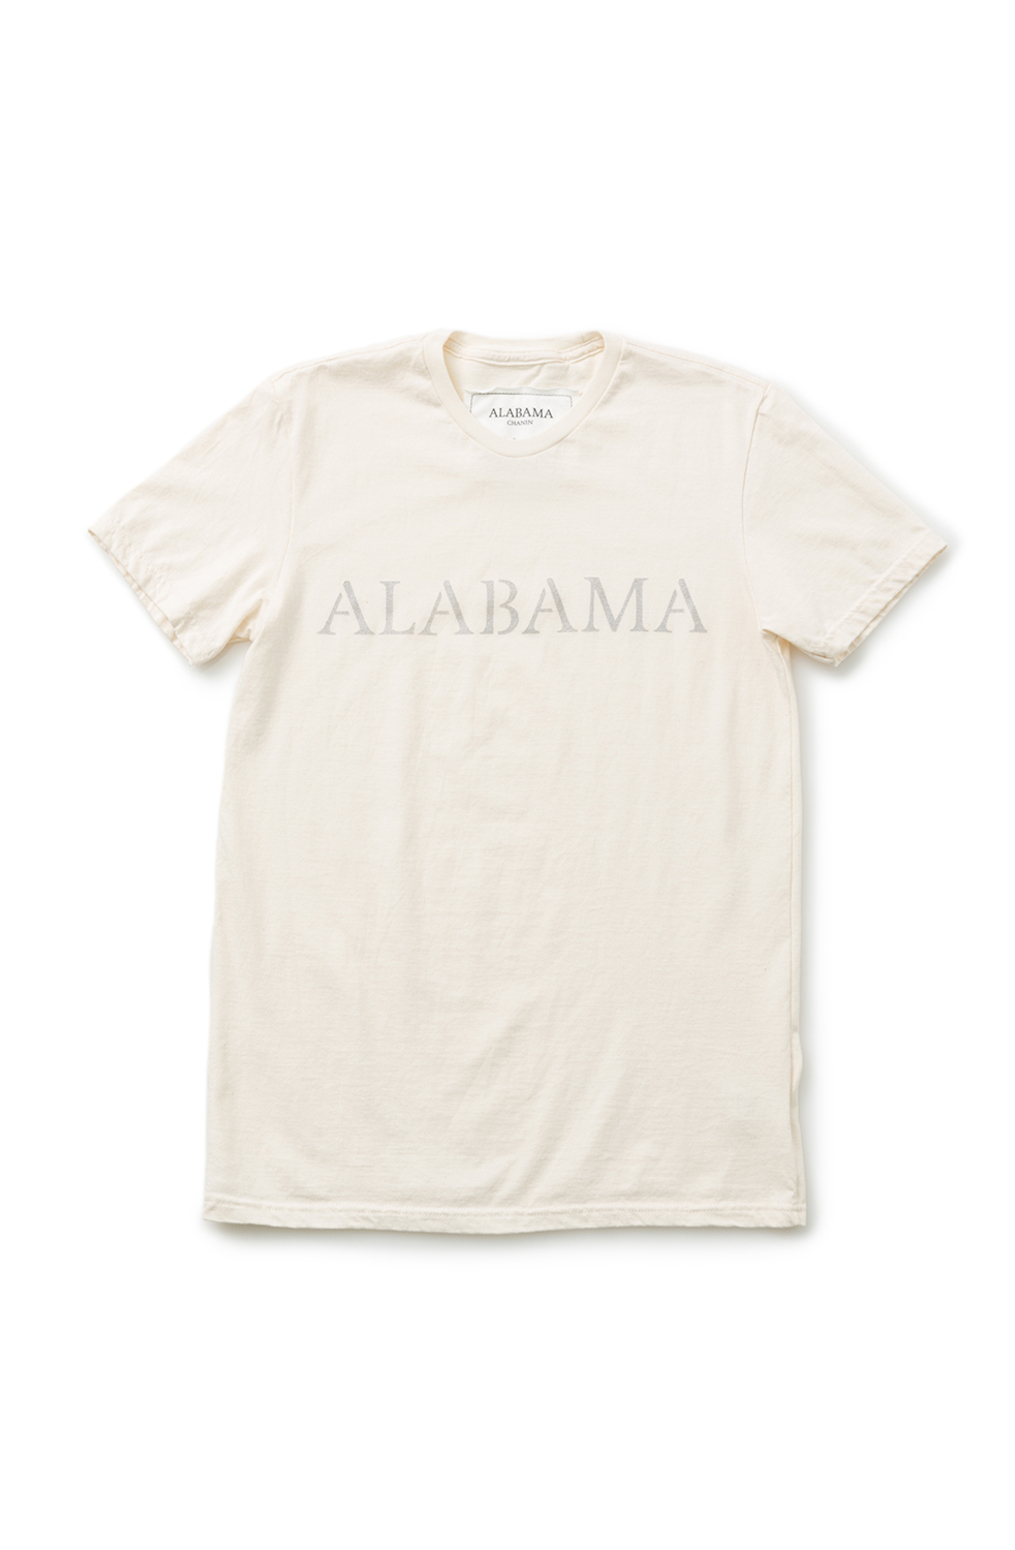 Alabama chanin alabama tee 4